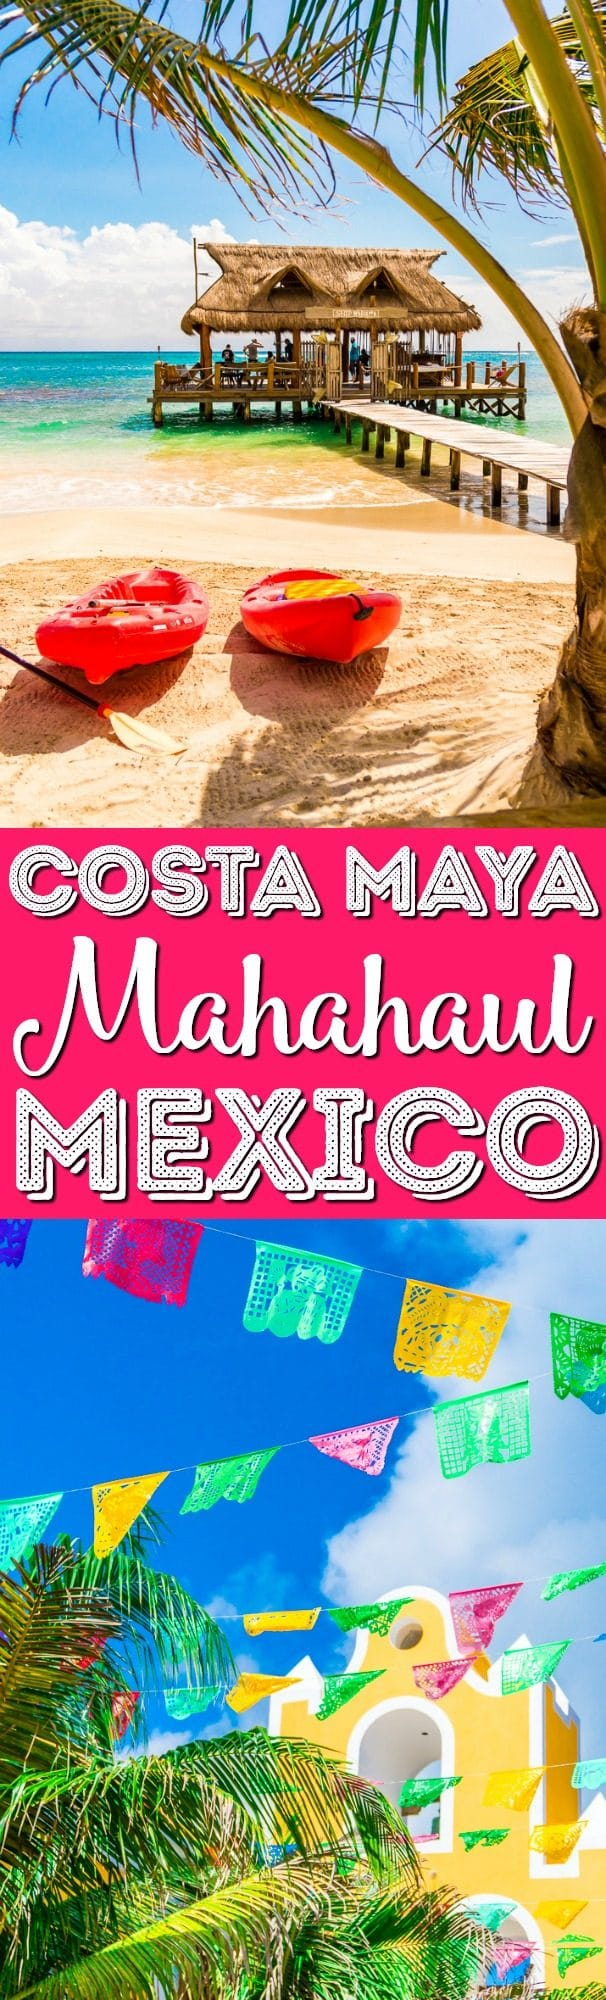 On a cruise or visiting the Yucatan Peninsula and ready for a little adventure or relaxing? Here are some Things To Do in Costa Maya and Mahahaul Mexico!